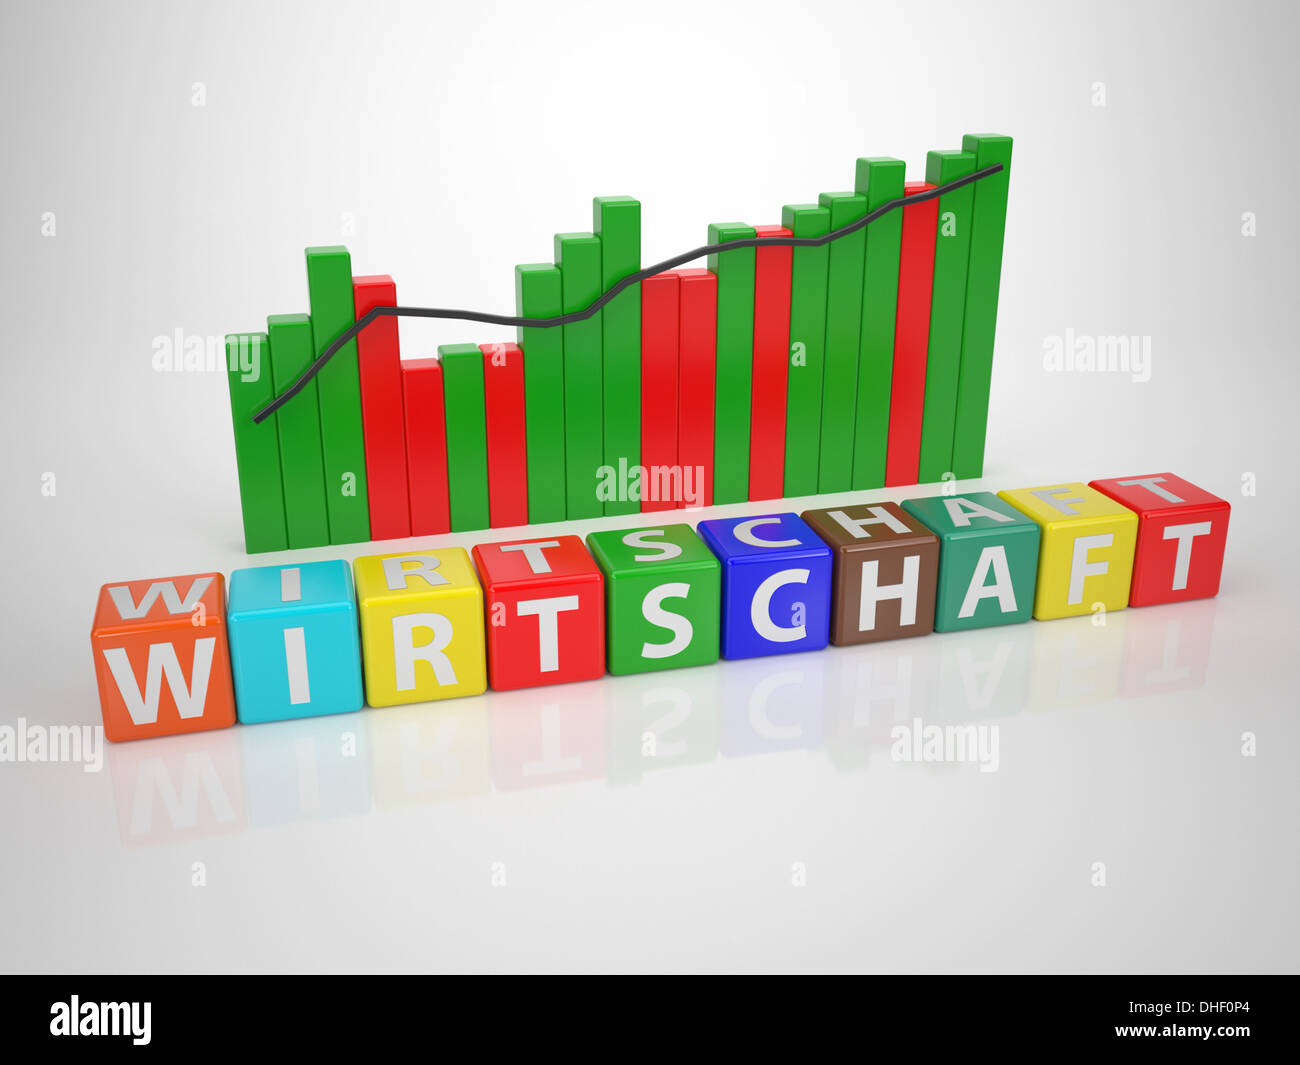 Wirtschaft- Series Words out of Letterdices Stock Photo